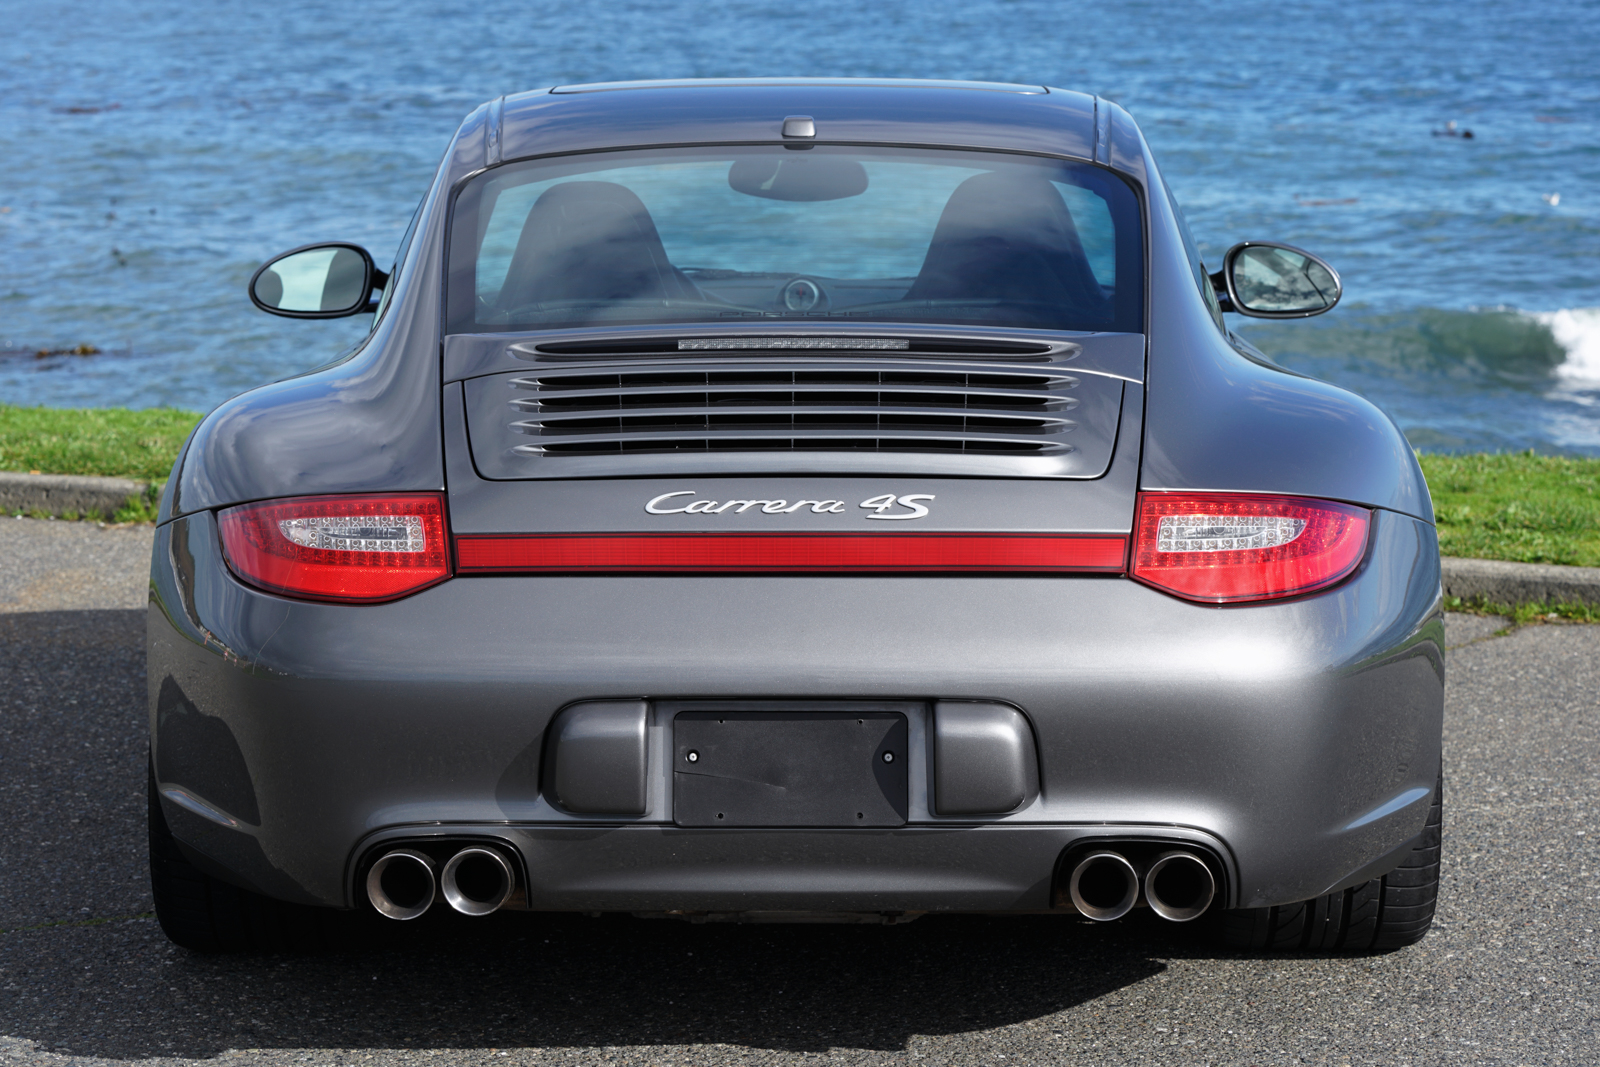 Porsche 911 997 Carrera 4s Launch Edition For Sale